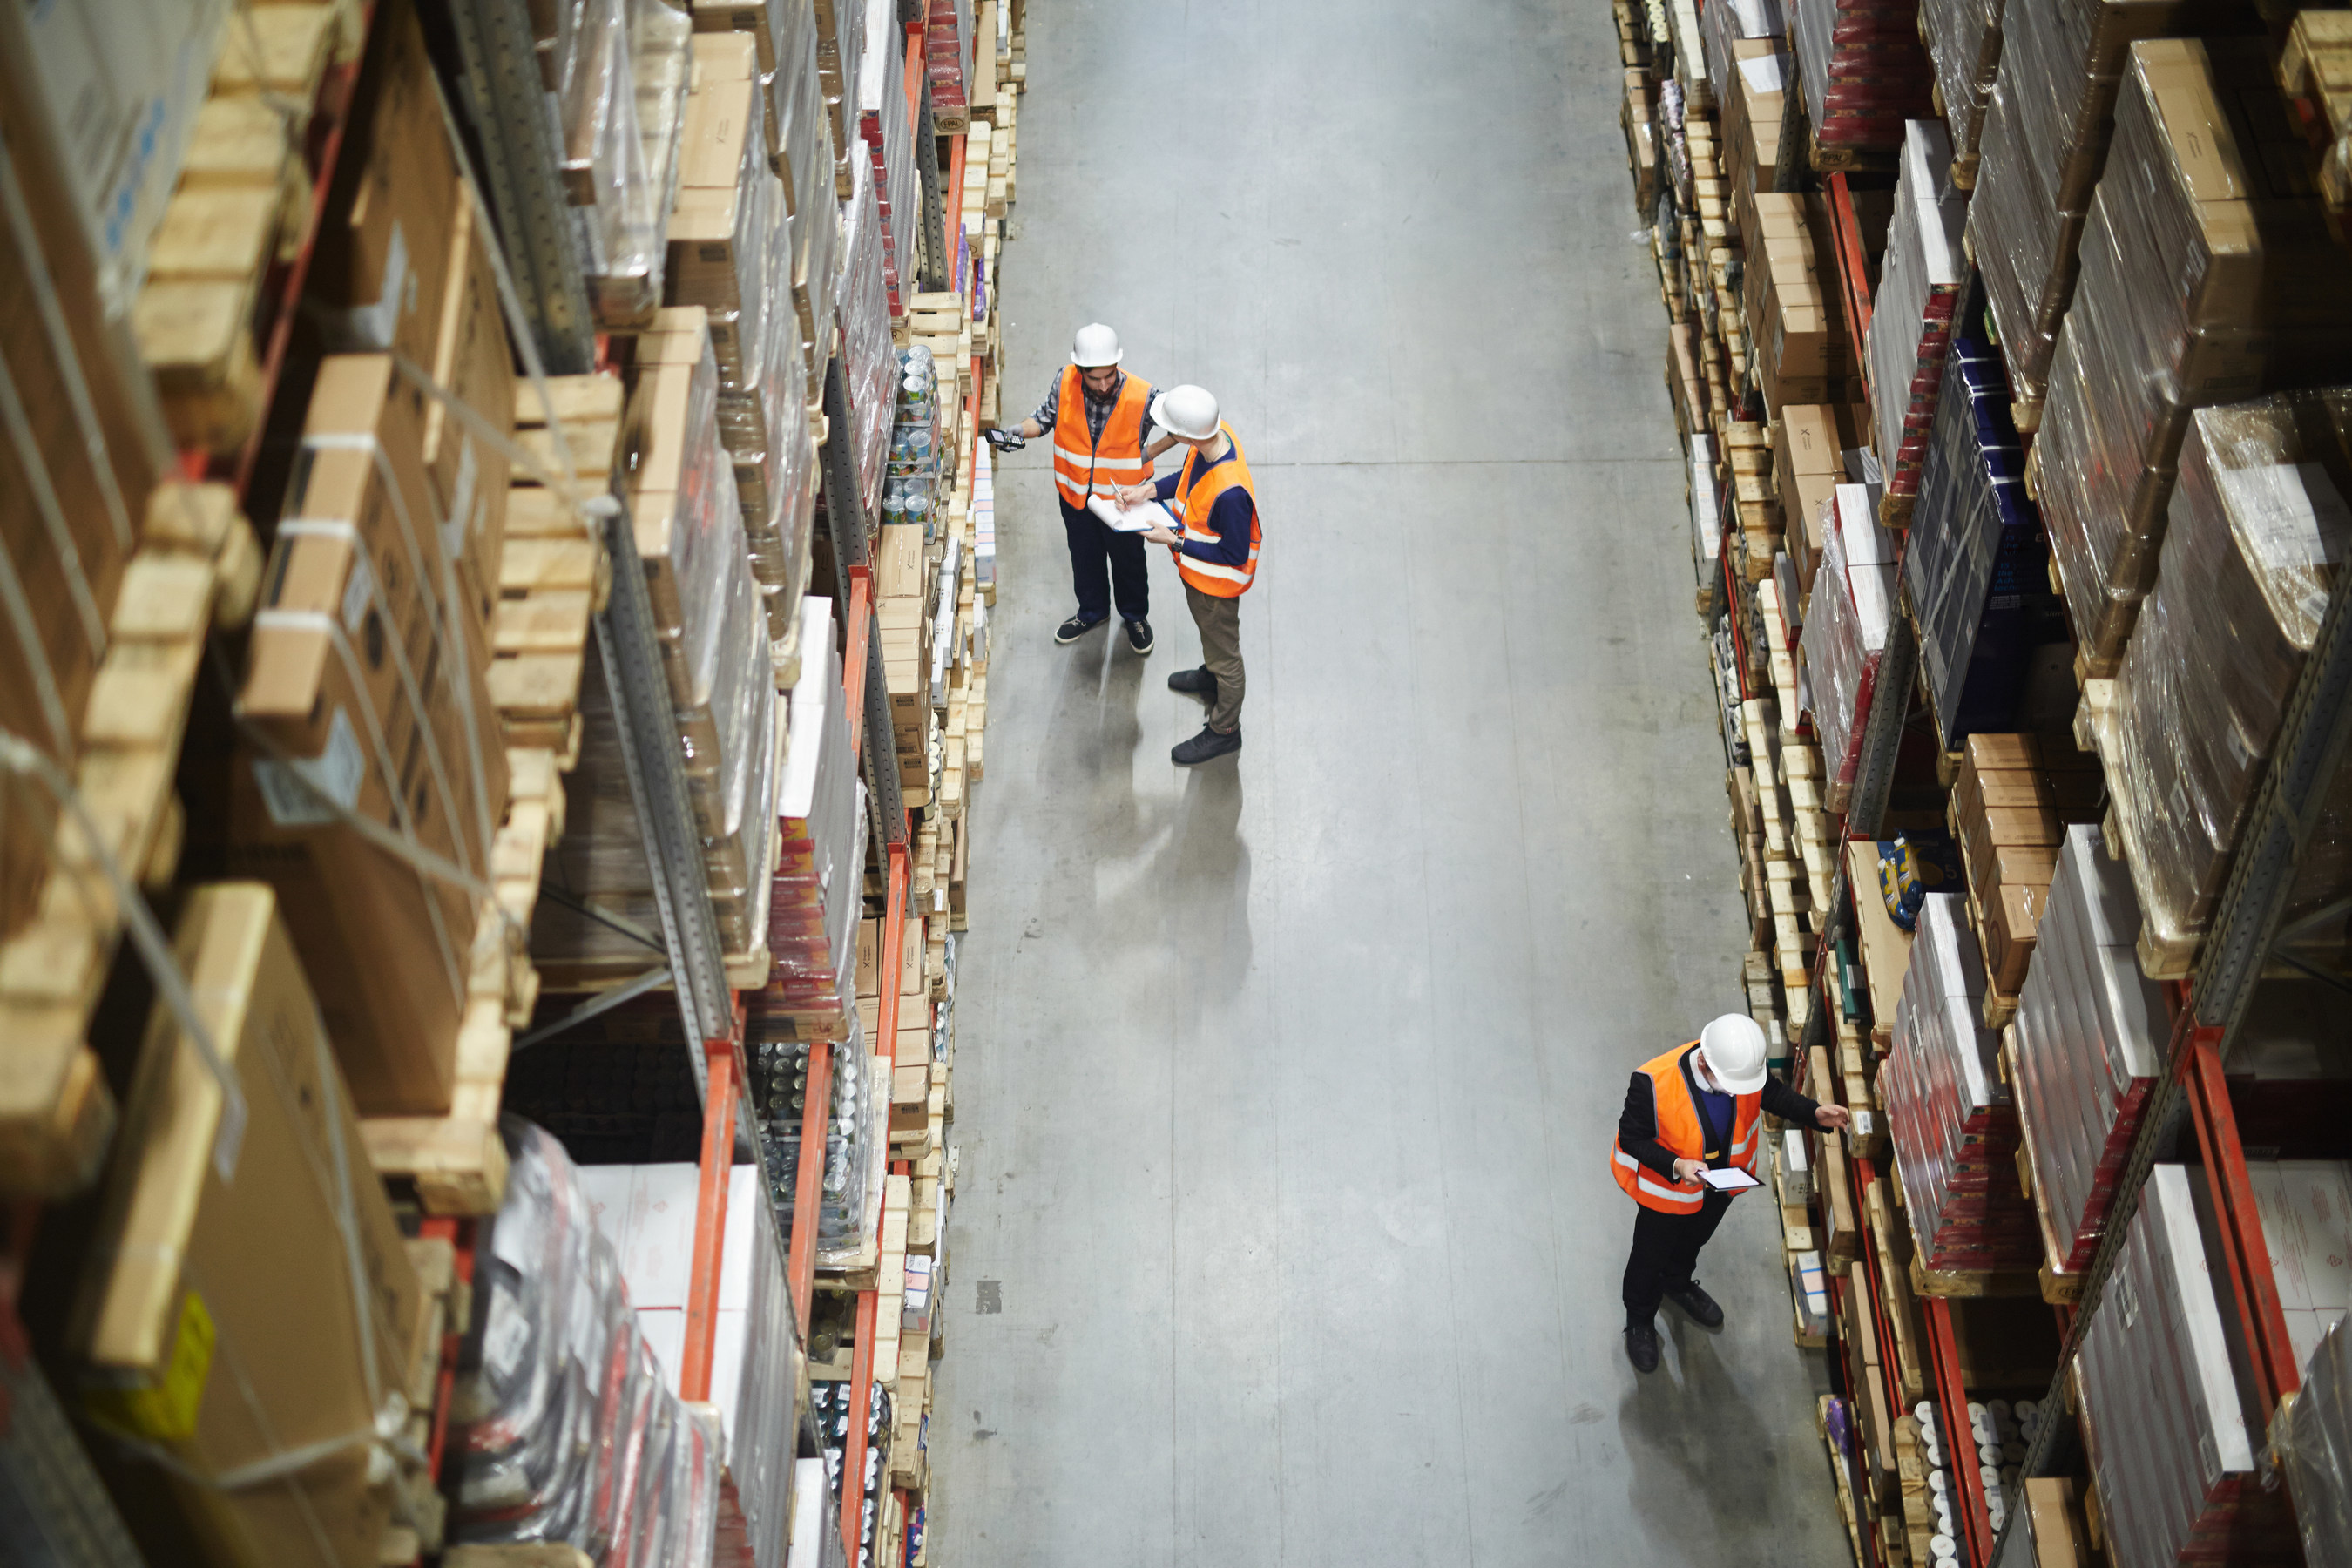 The_Warehouse_and_Inventory_Management_System_That_Scales_with_Your_Business